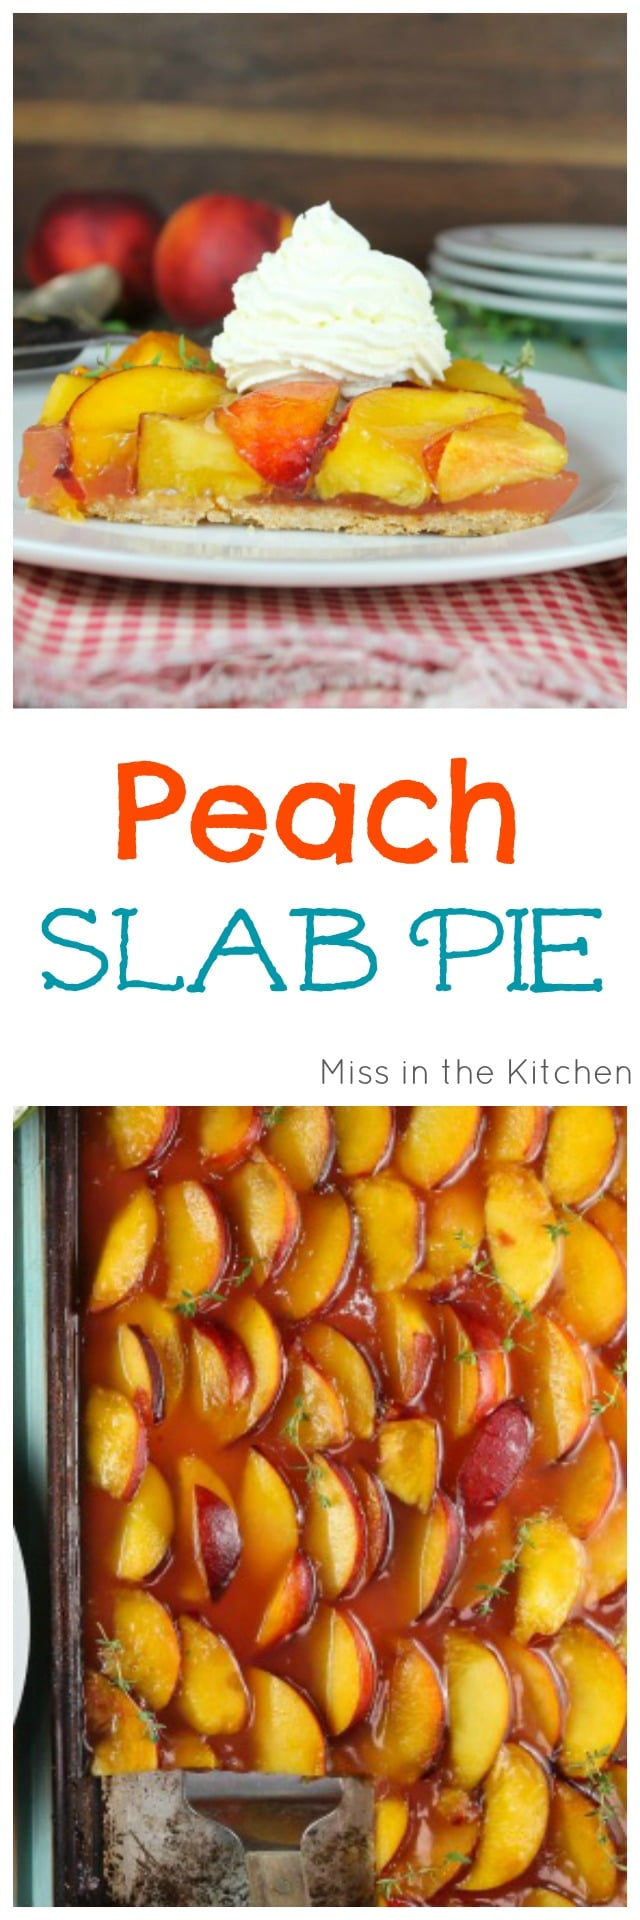 Peach Slab Pie Dessert Recipe using summer fresh peaches. From MissintheKitchen.com